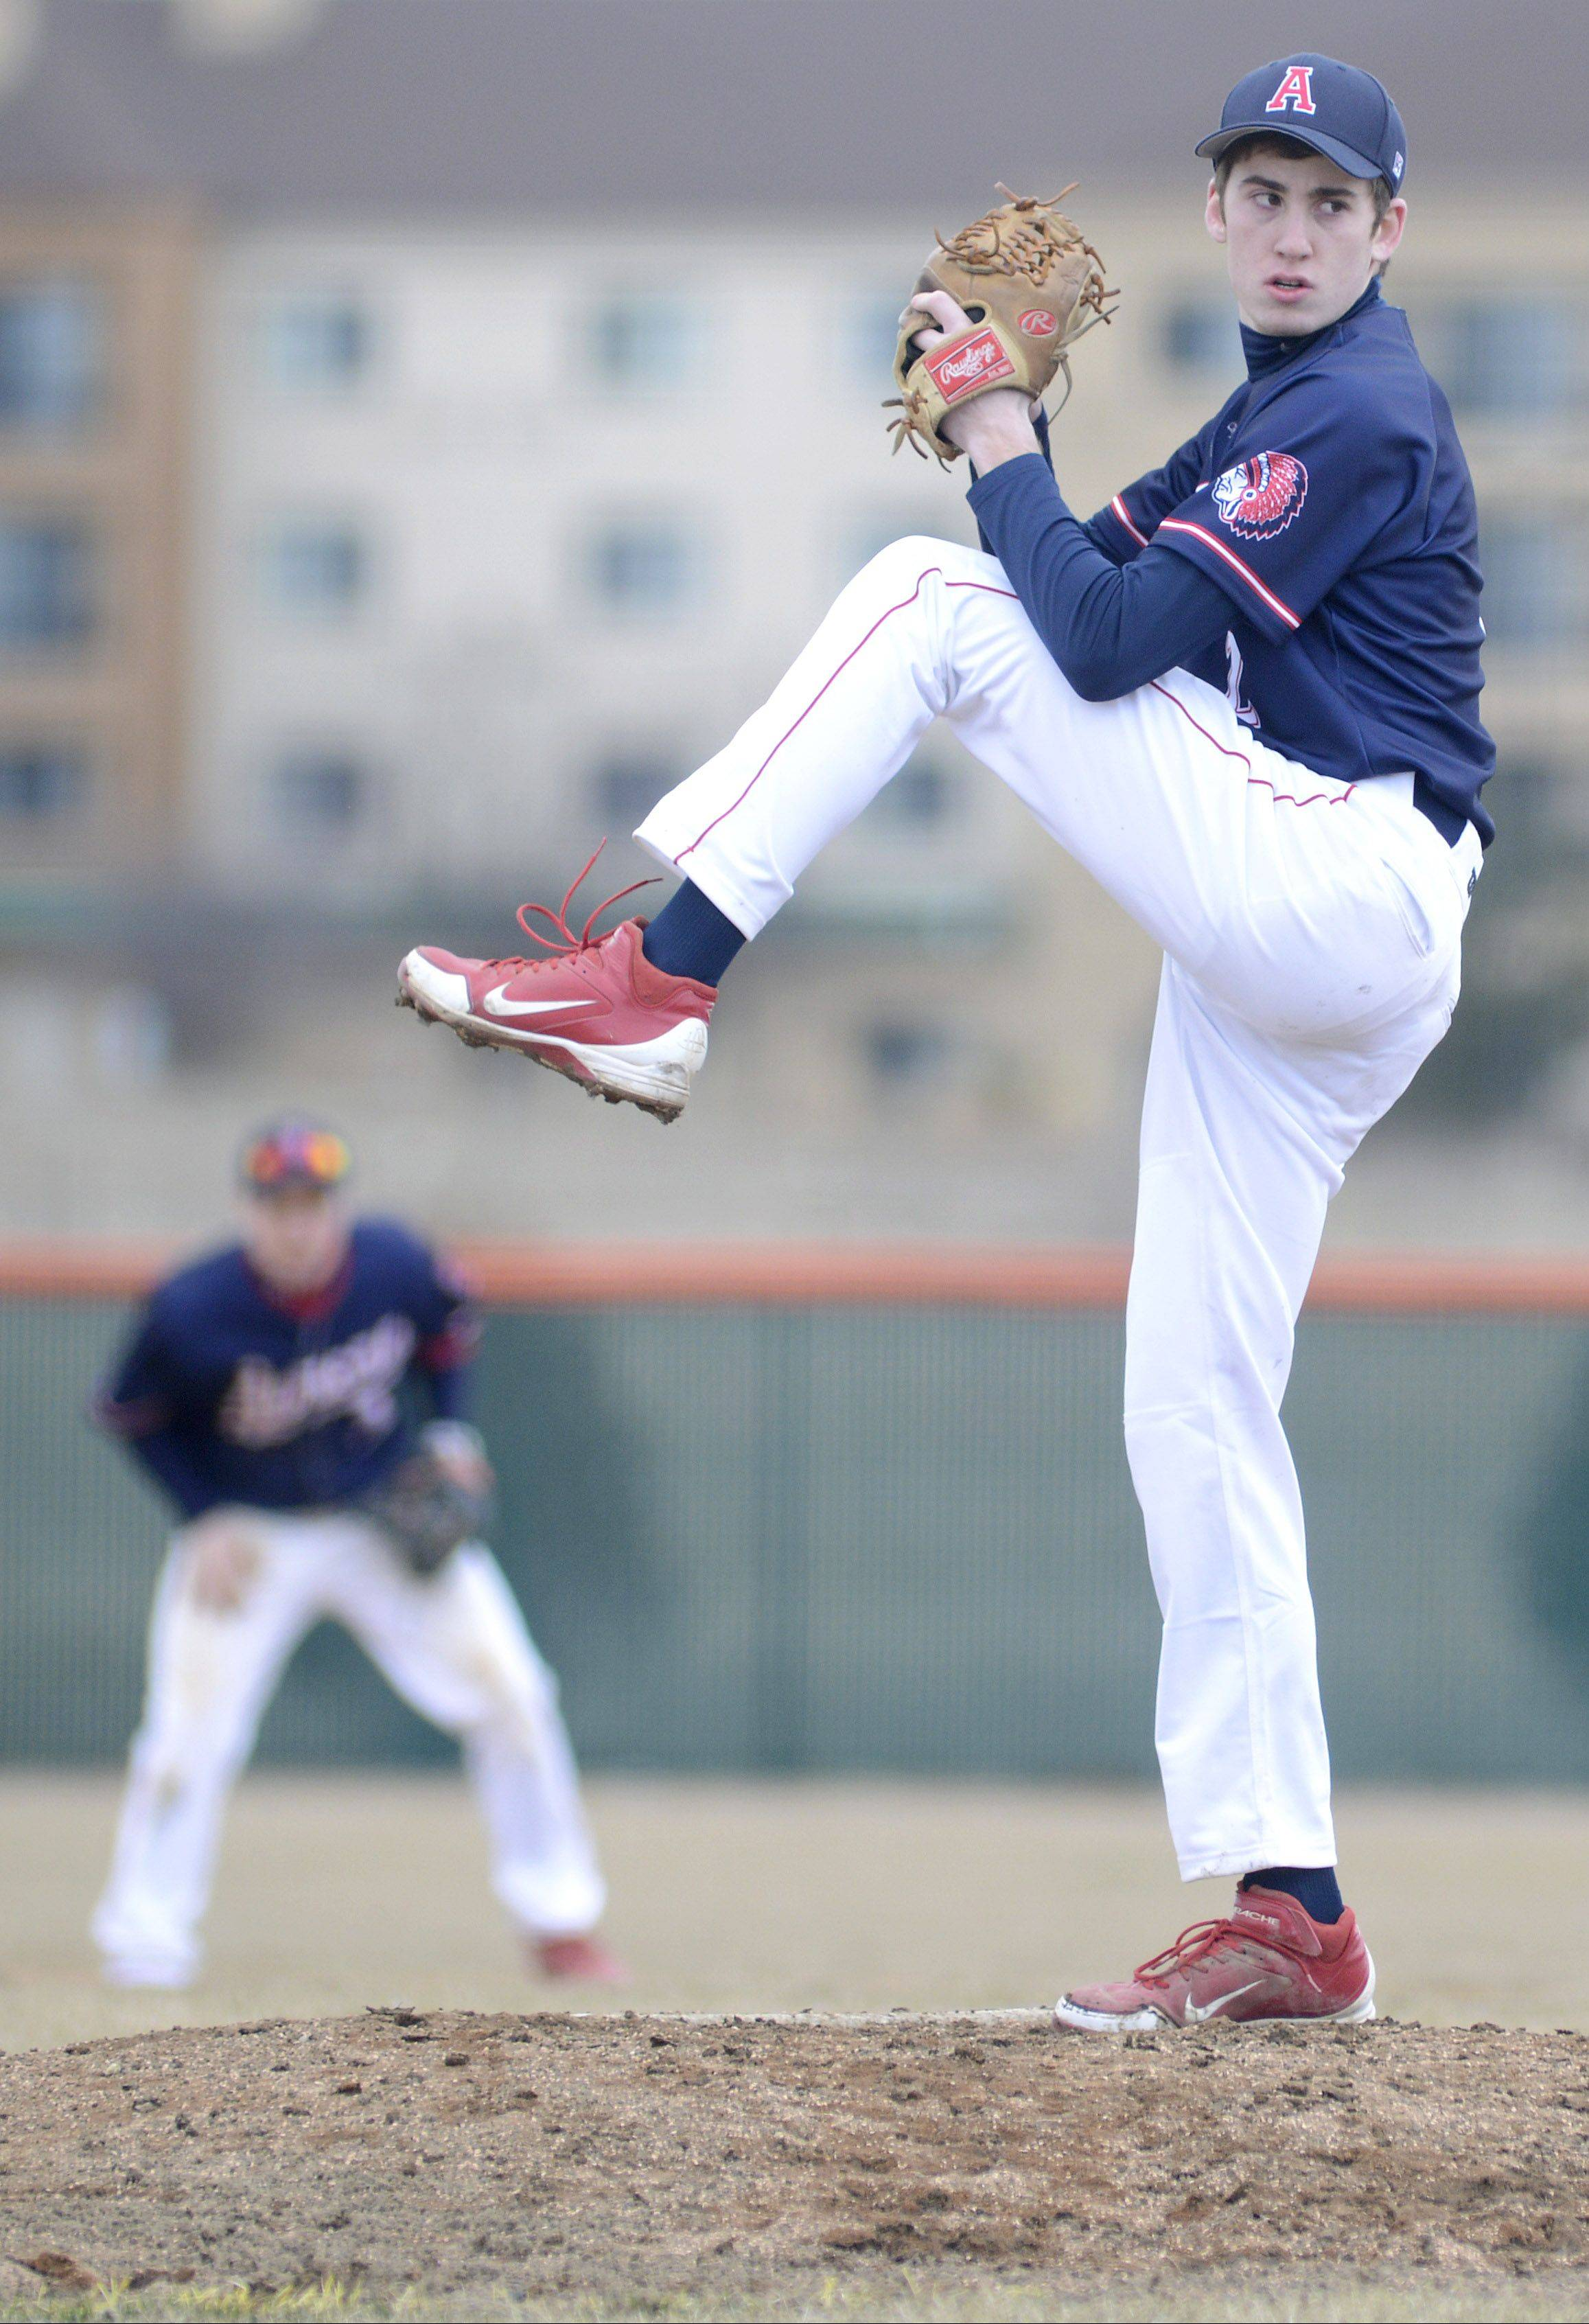 West Aurora's Ottavio Dattolo pitches in game vs. St. Charles East on Tuesday, March 26.